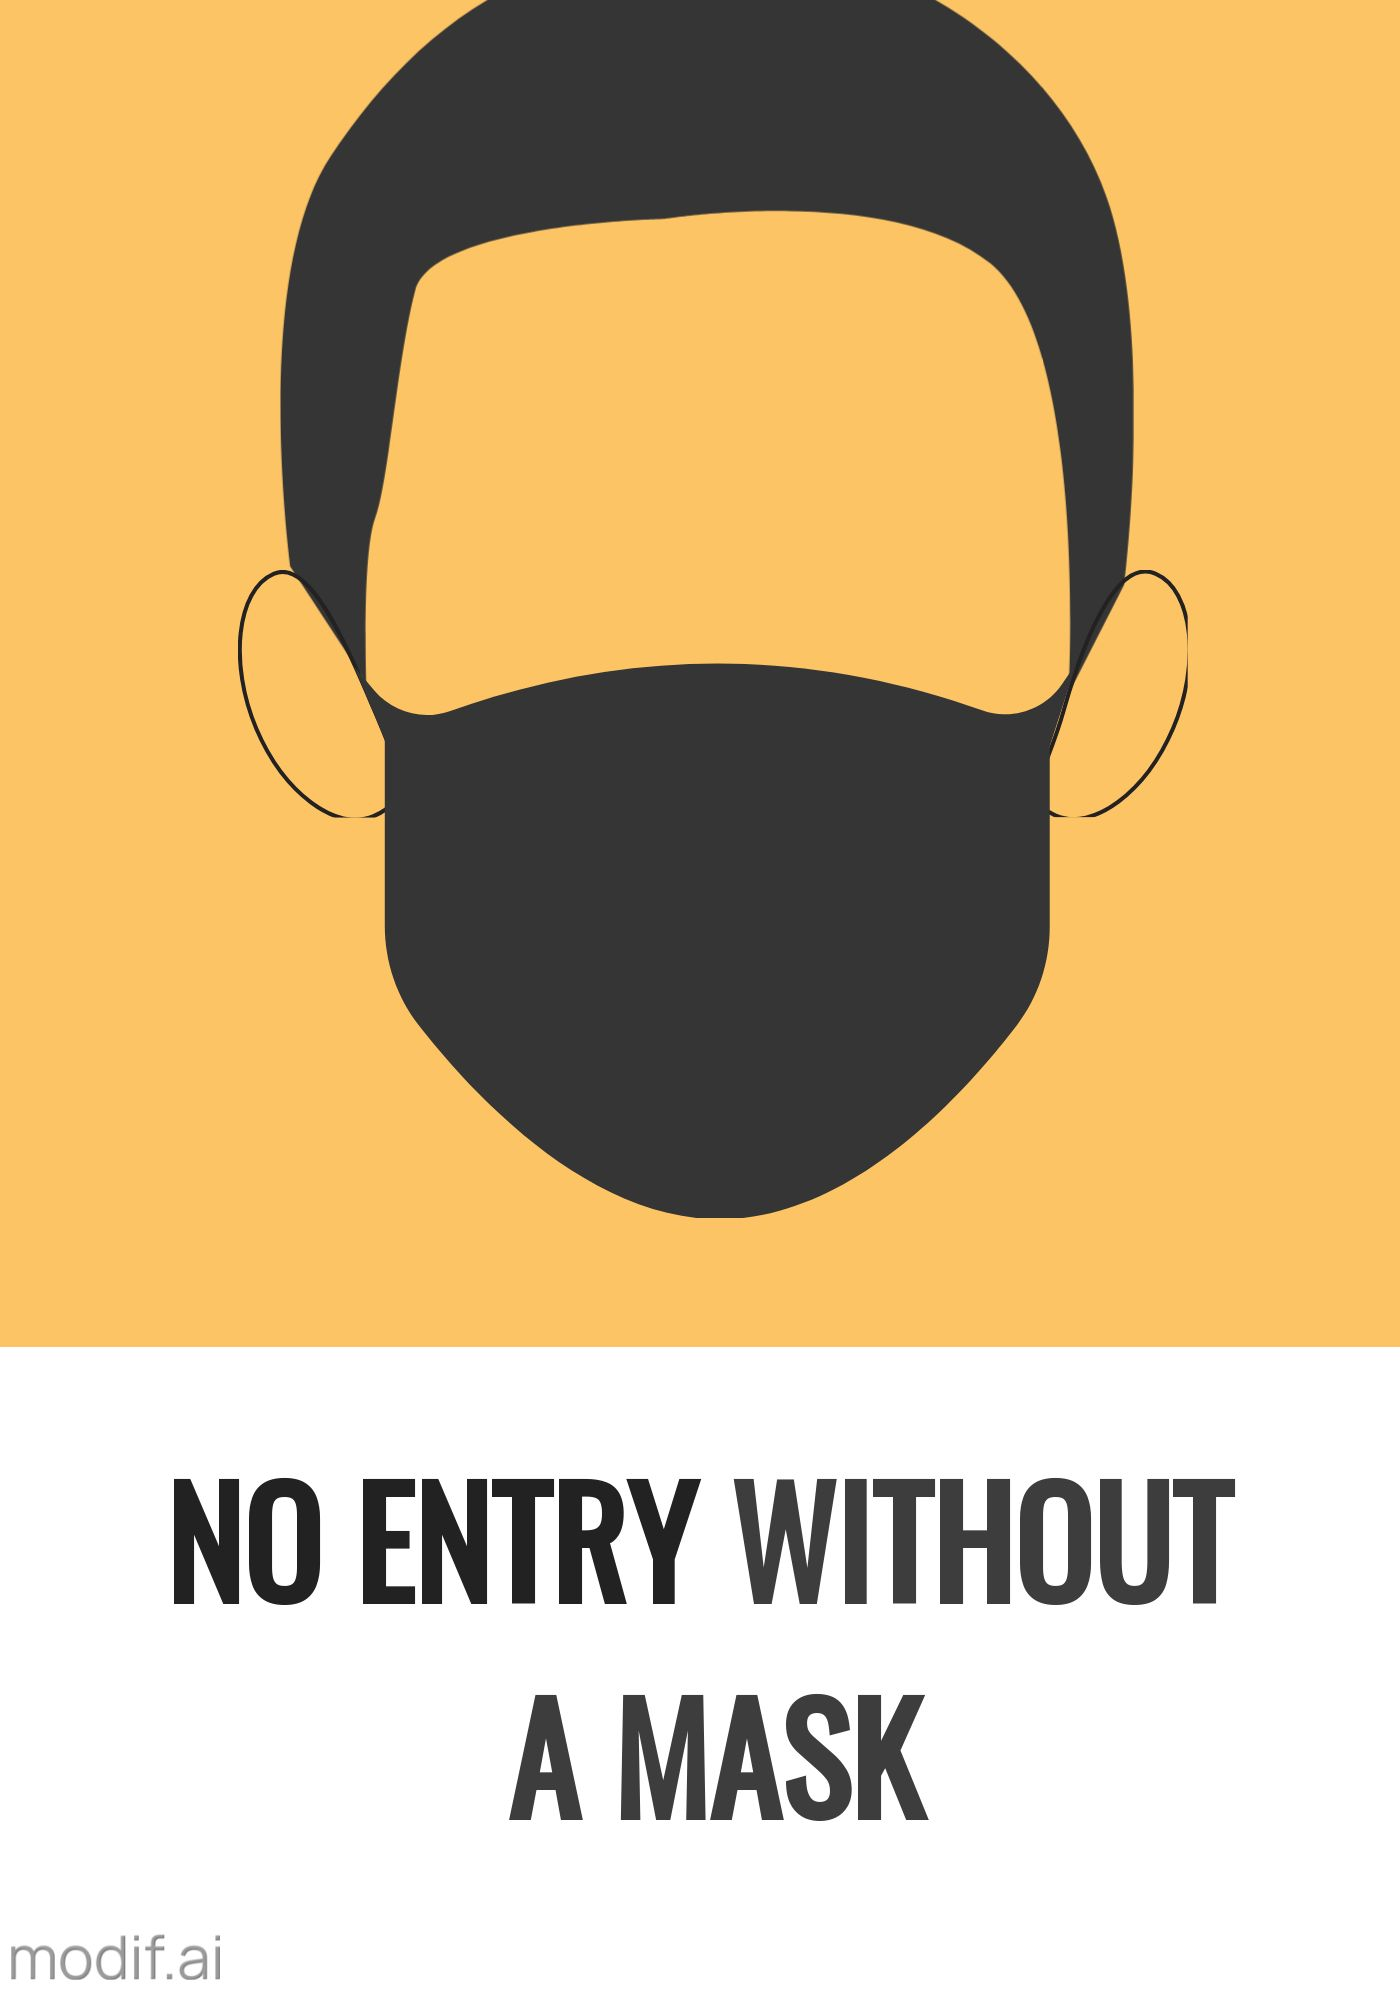 No Entry Without Mask Poster Template